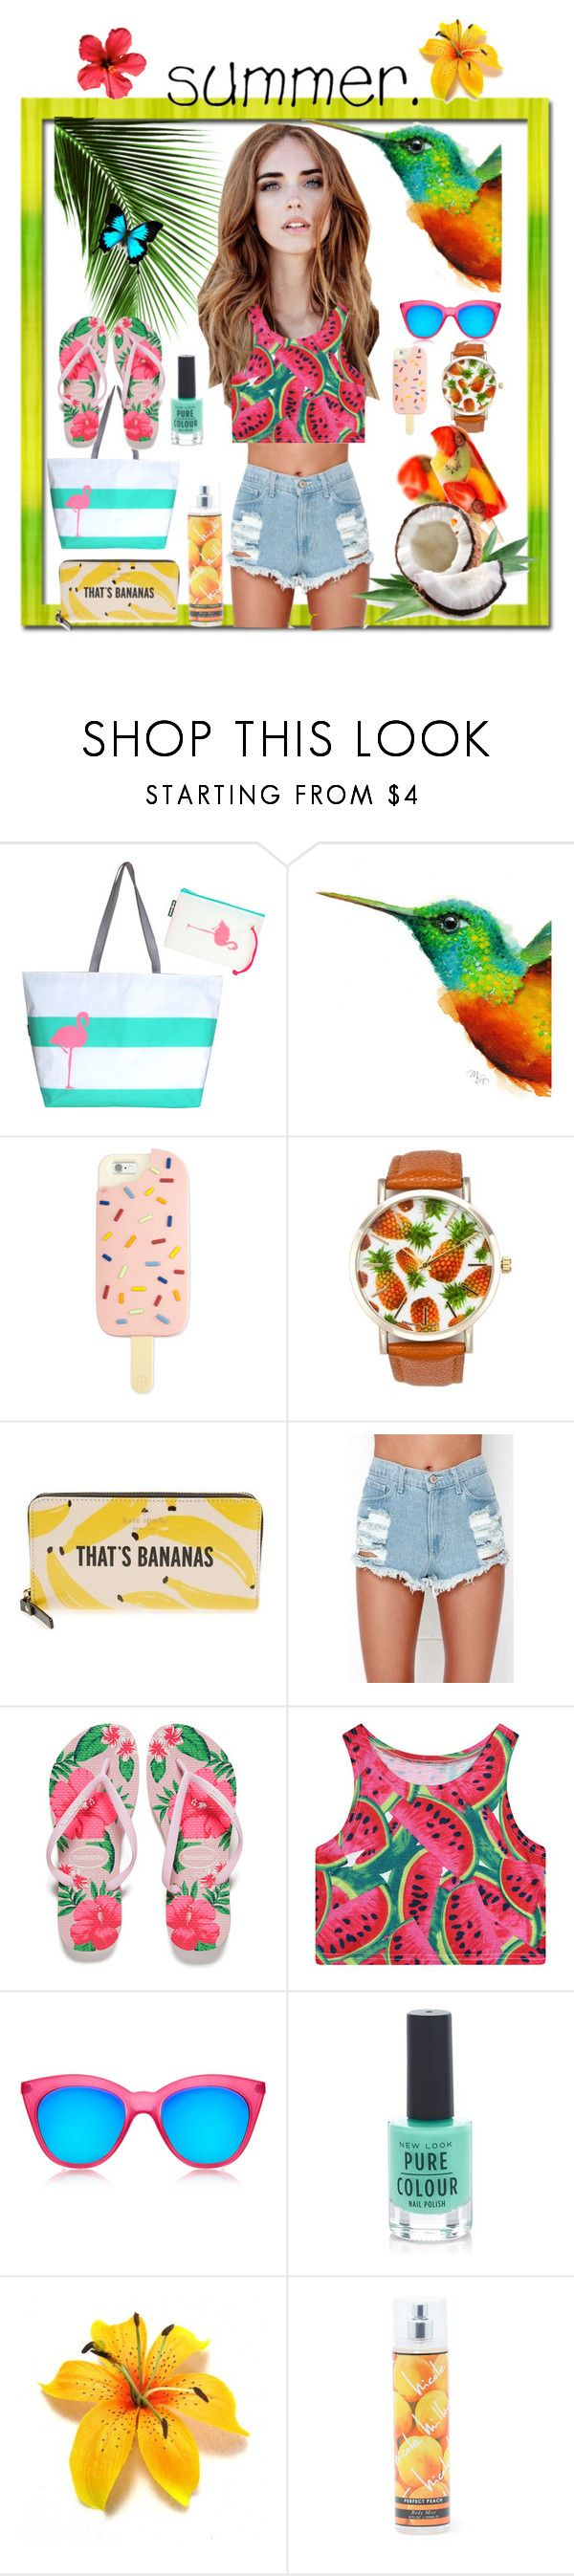 """fruity summer outfit"" by anoo17k ❤ liked on Polyvore featuring Hayden Reis, Tory Burch, A Classic Time Watch Co., Kate Spade, WithChic, Havaianas, Chicnova Fashion, Le Specs, New Look and Nicole Miller"